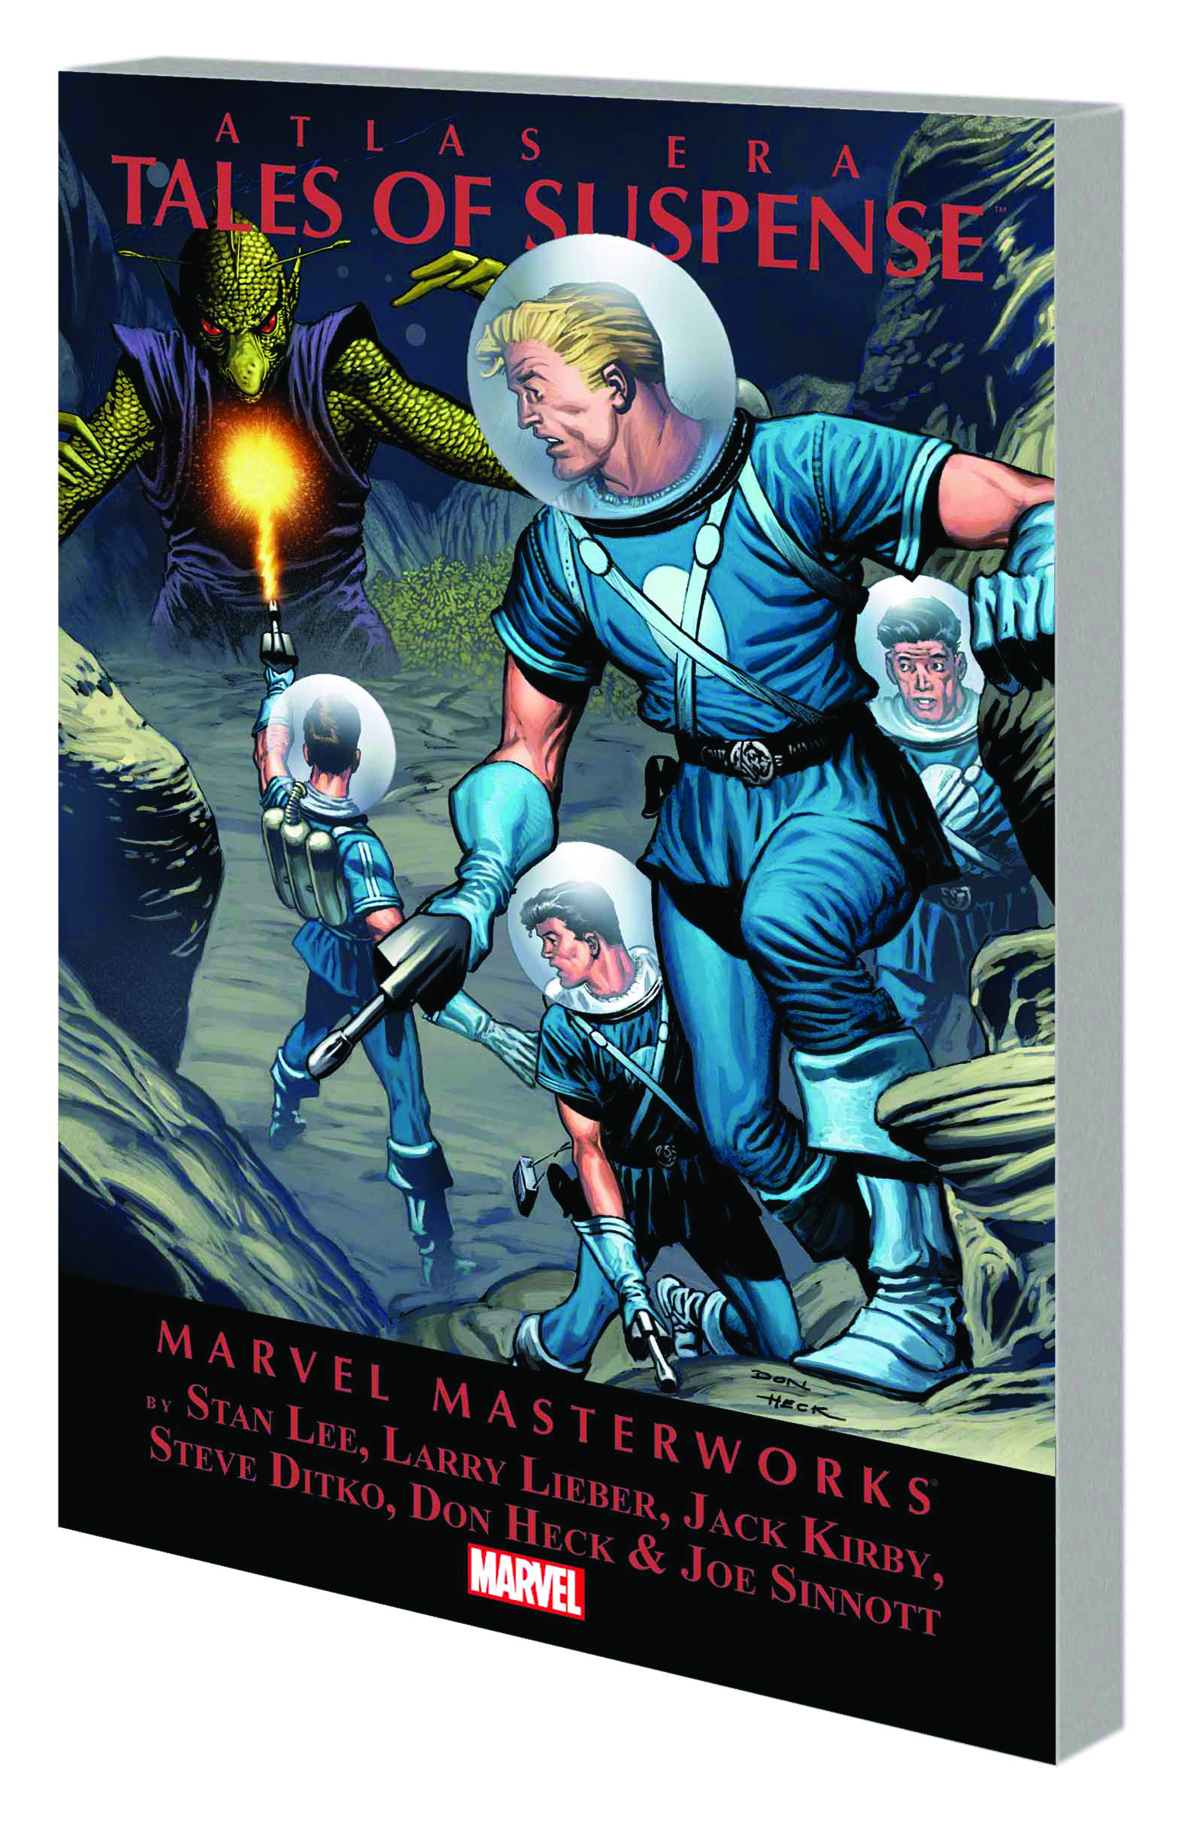 MMW ATLAS ERA TALES OF SUSPENSE TP VOL 01